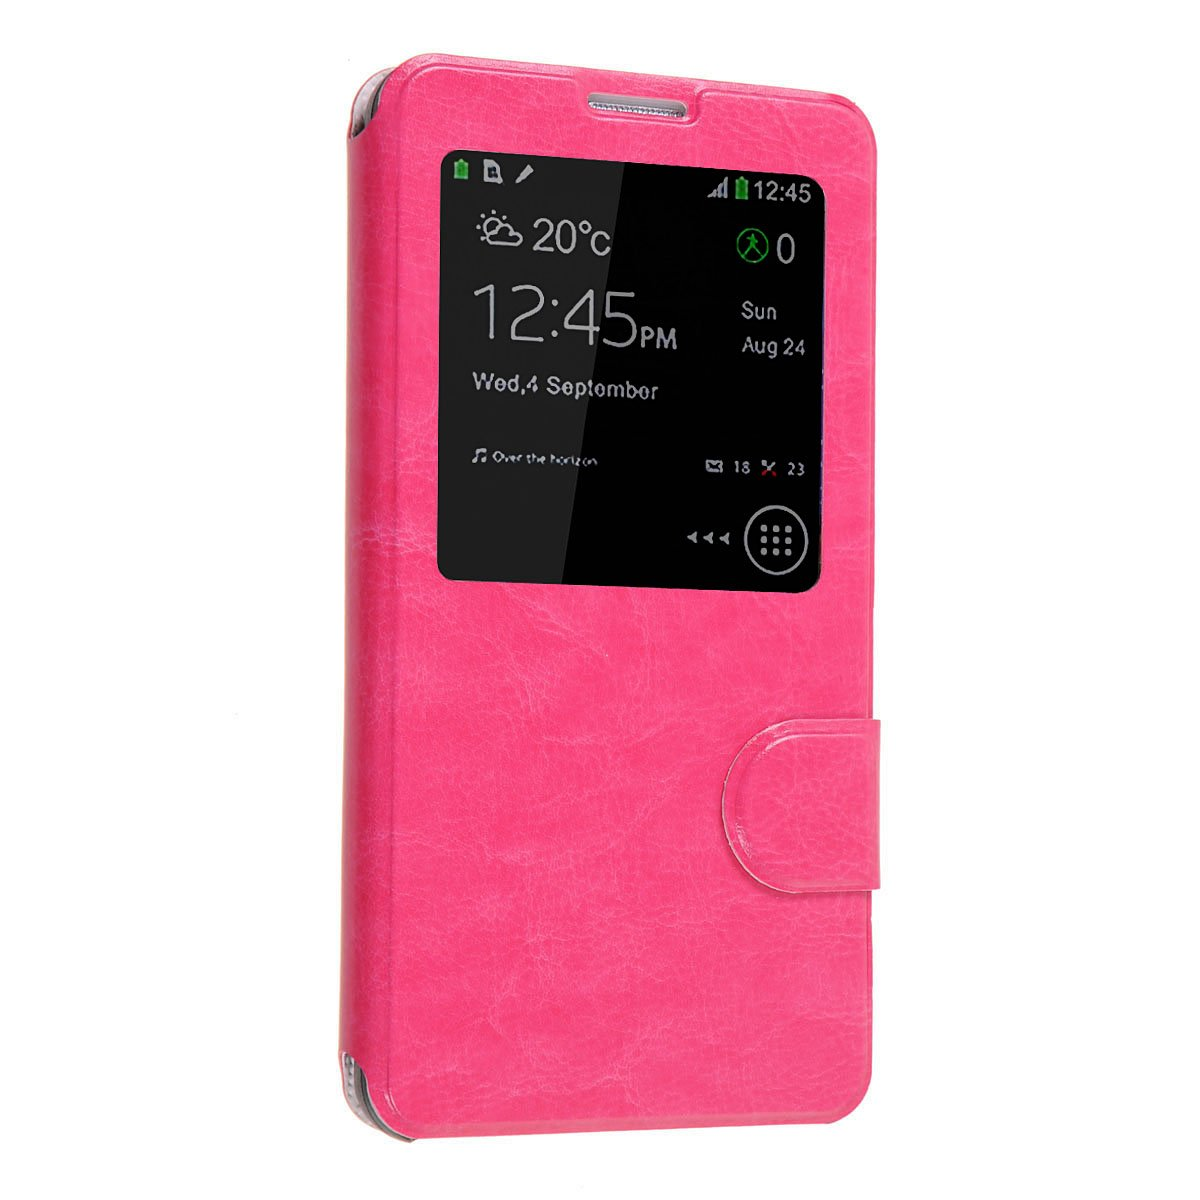 Okeler Hot Pink S-View Flip Cover Leather Case